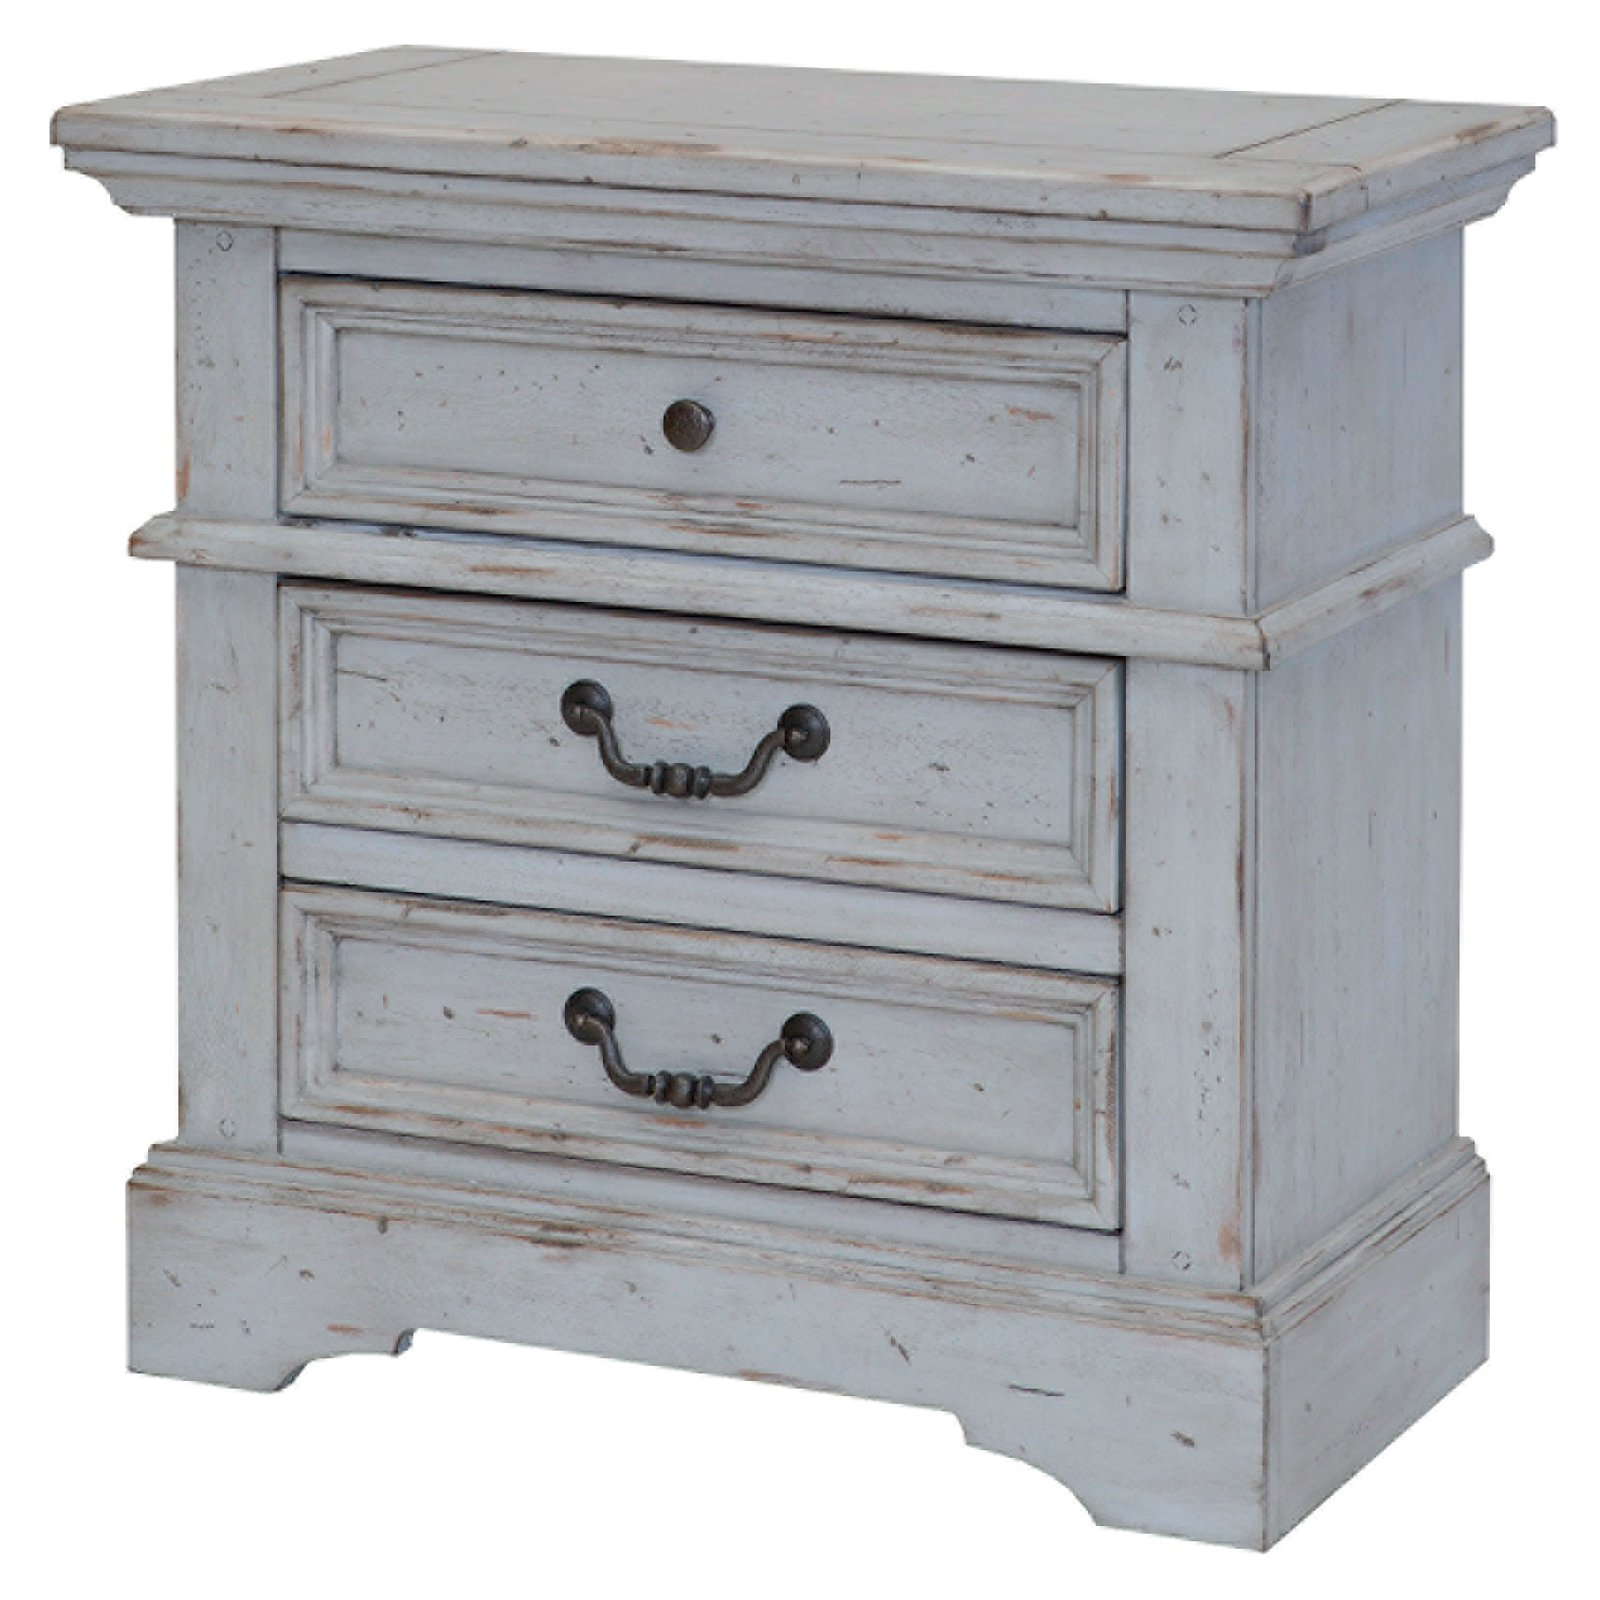 footlocker trunk the terrific awesome mainstays nightstand end winsome ava drawer accent table master dark gray oak wire magazine rack chinese style furniture christmas flower